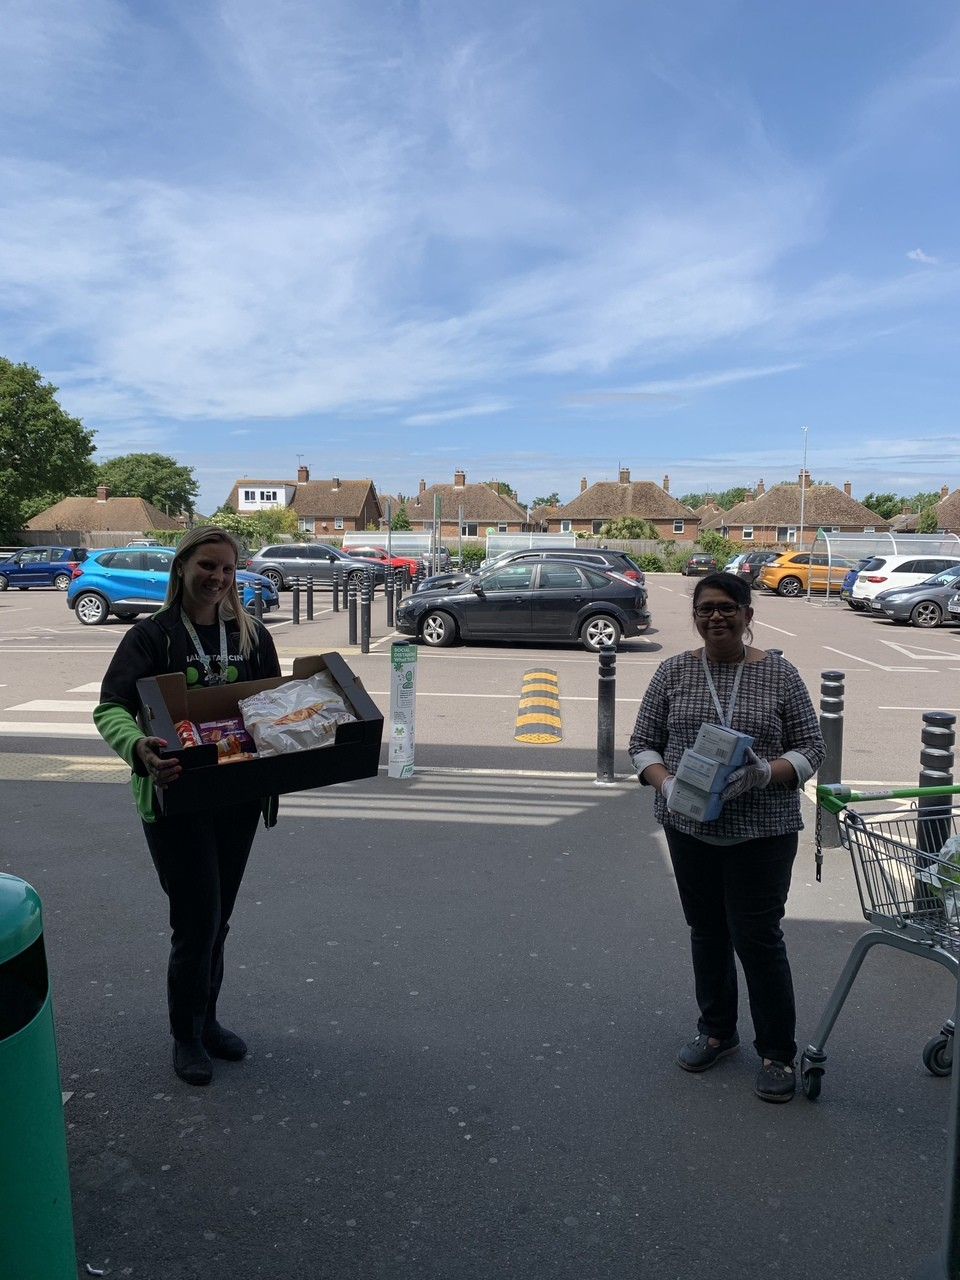 Donation to St Marks Residential Home | Asda Clacton-on-Sea